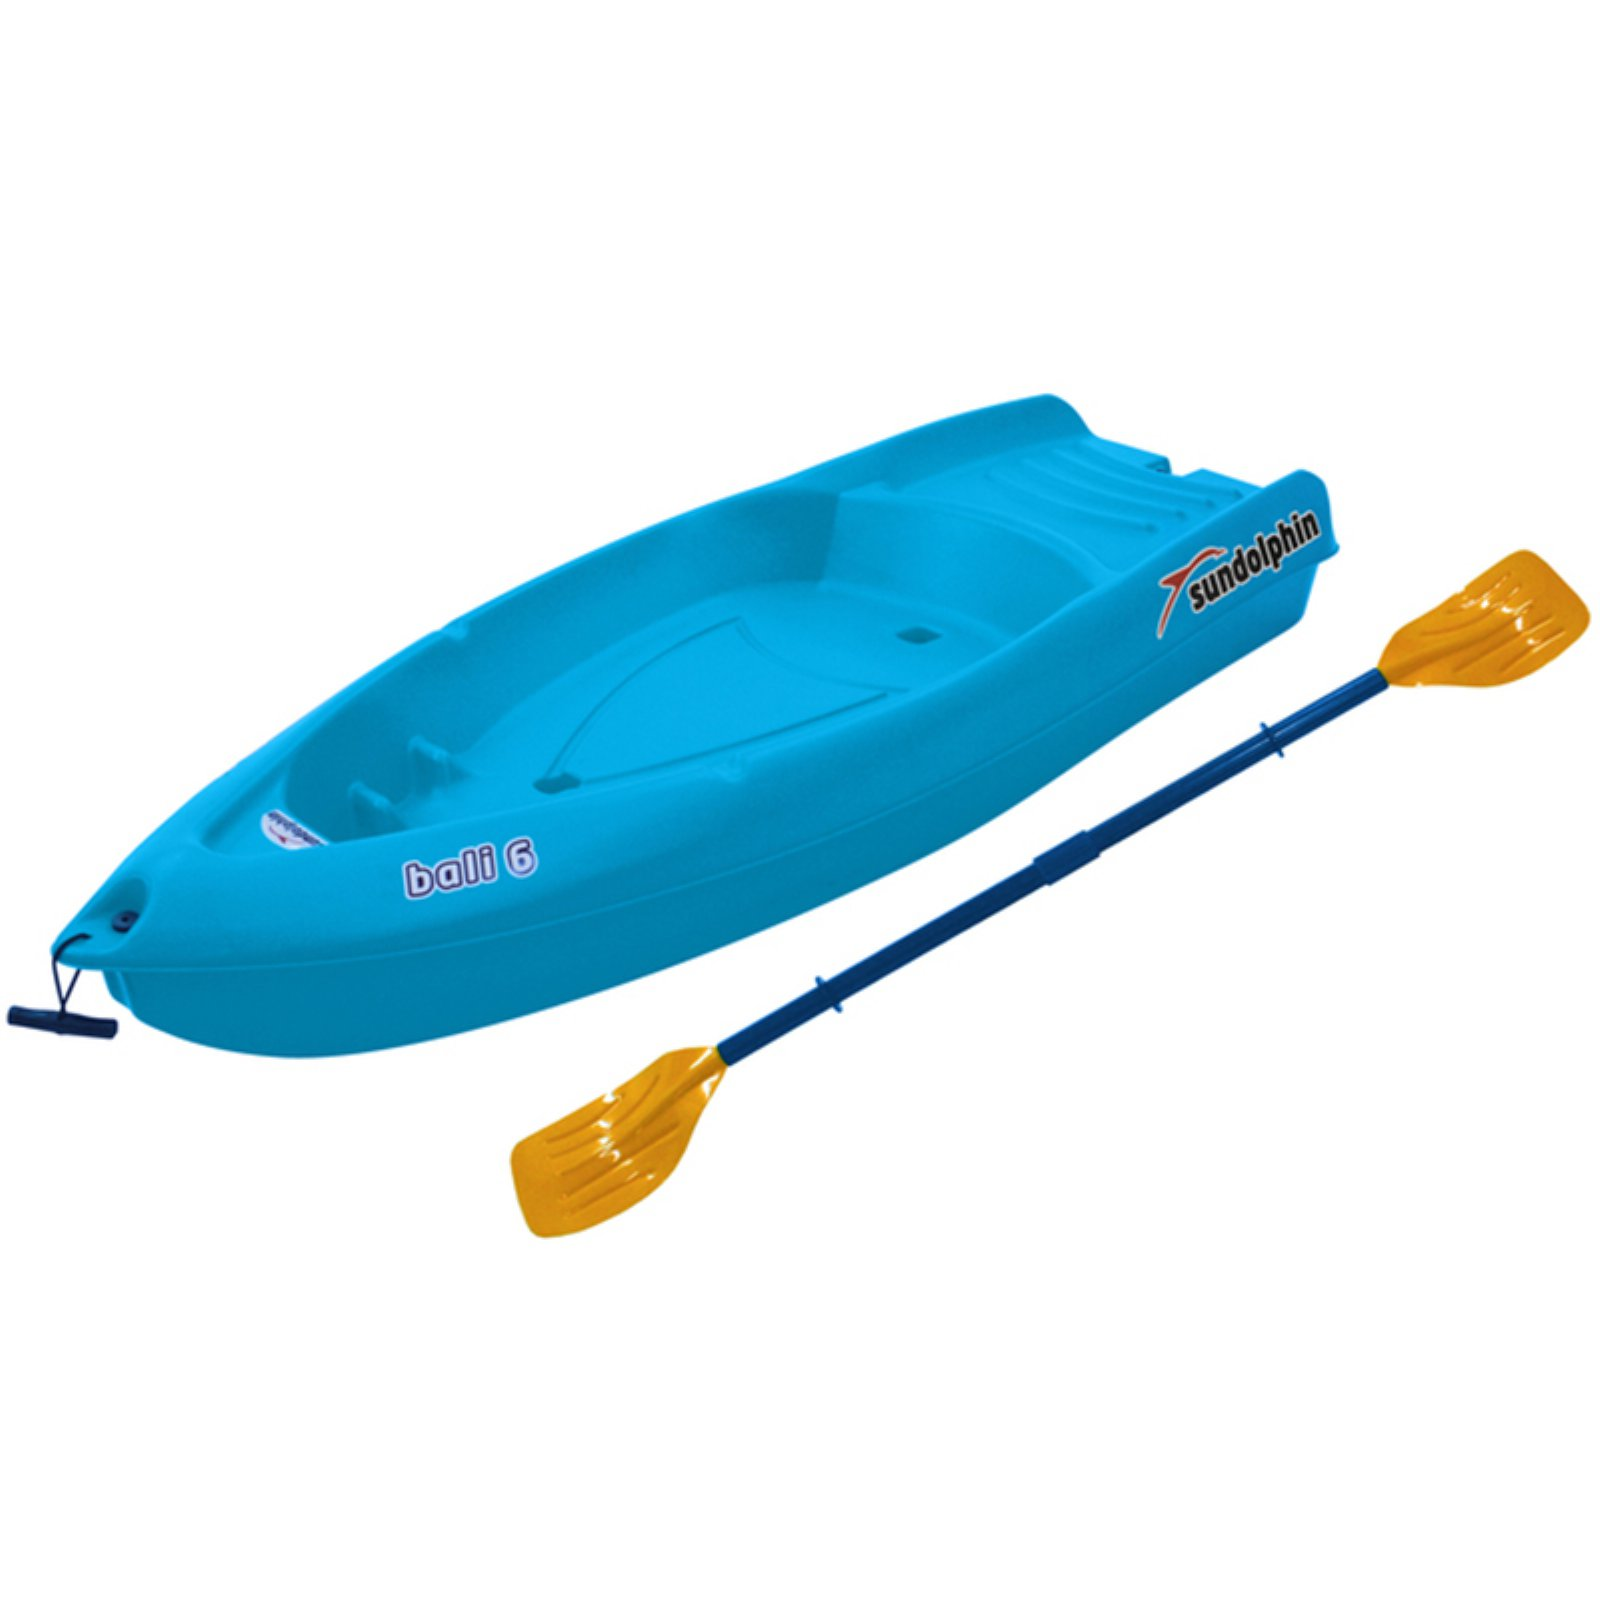 Sun Dolphin Bali 6' Youth Kayak Tangerine, Paddle Included by KLOutdoor